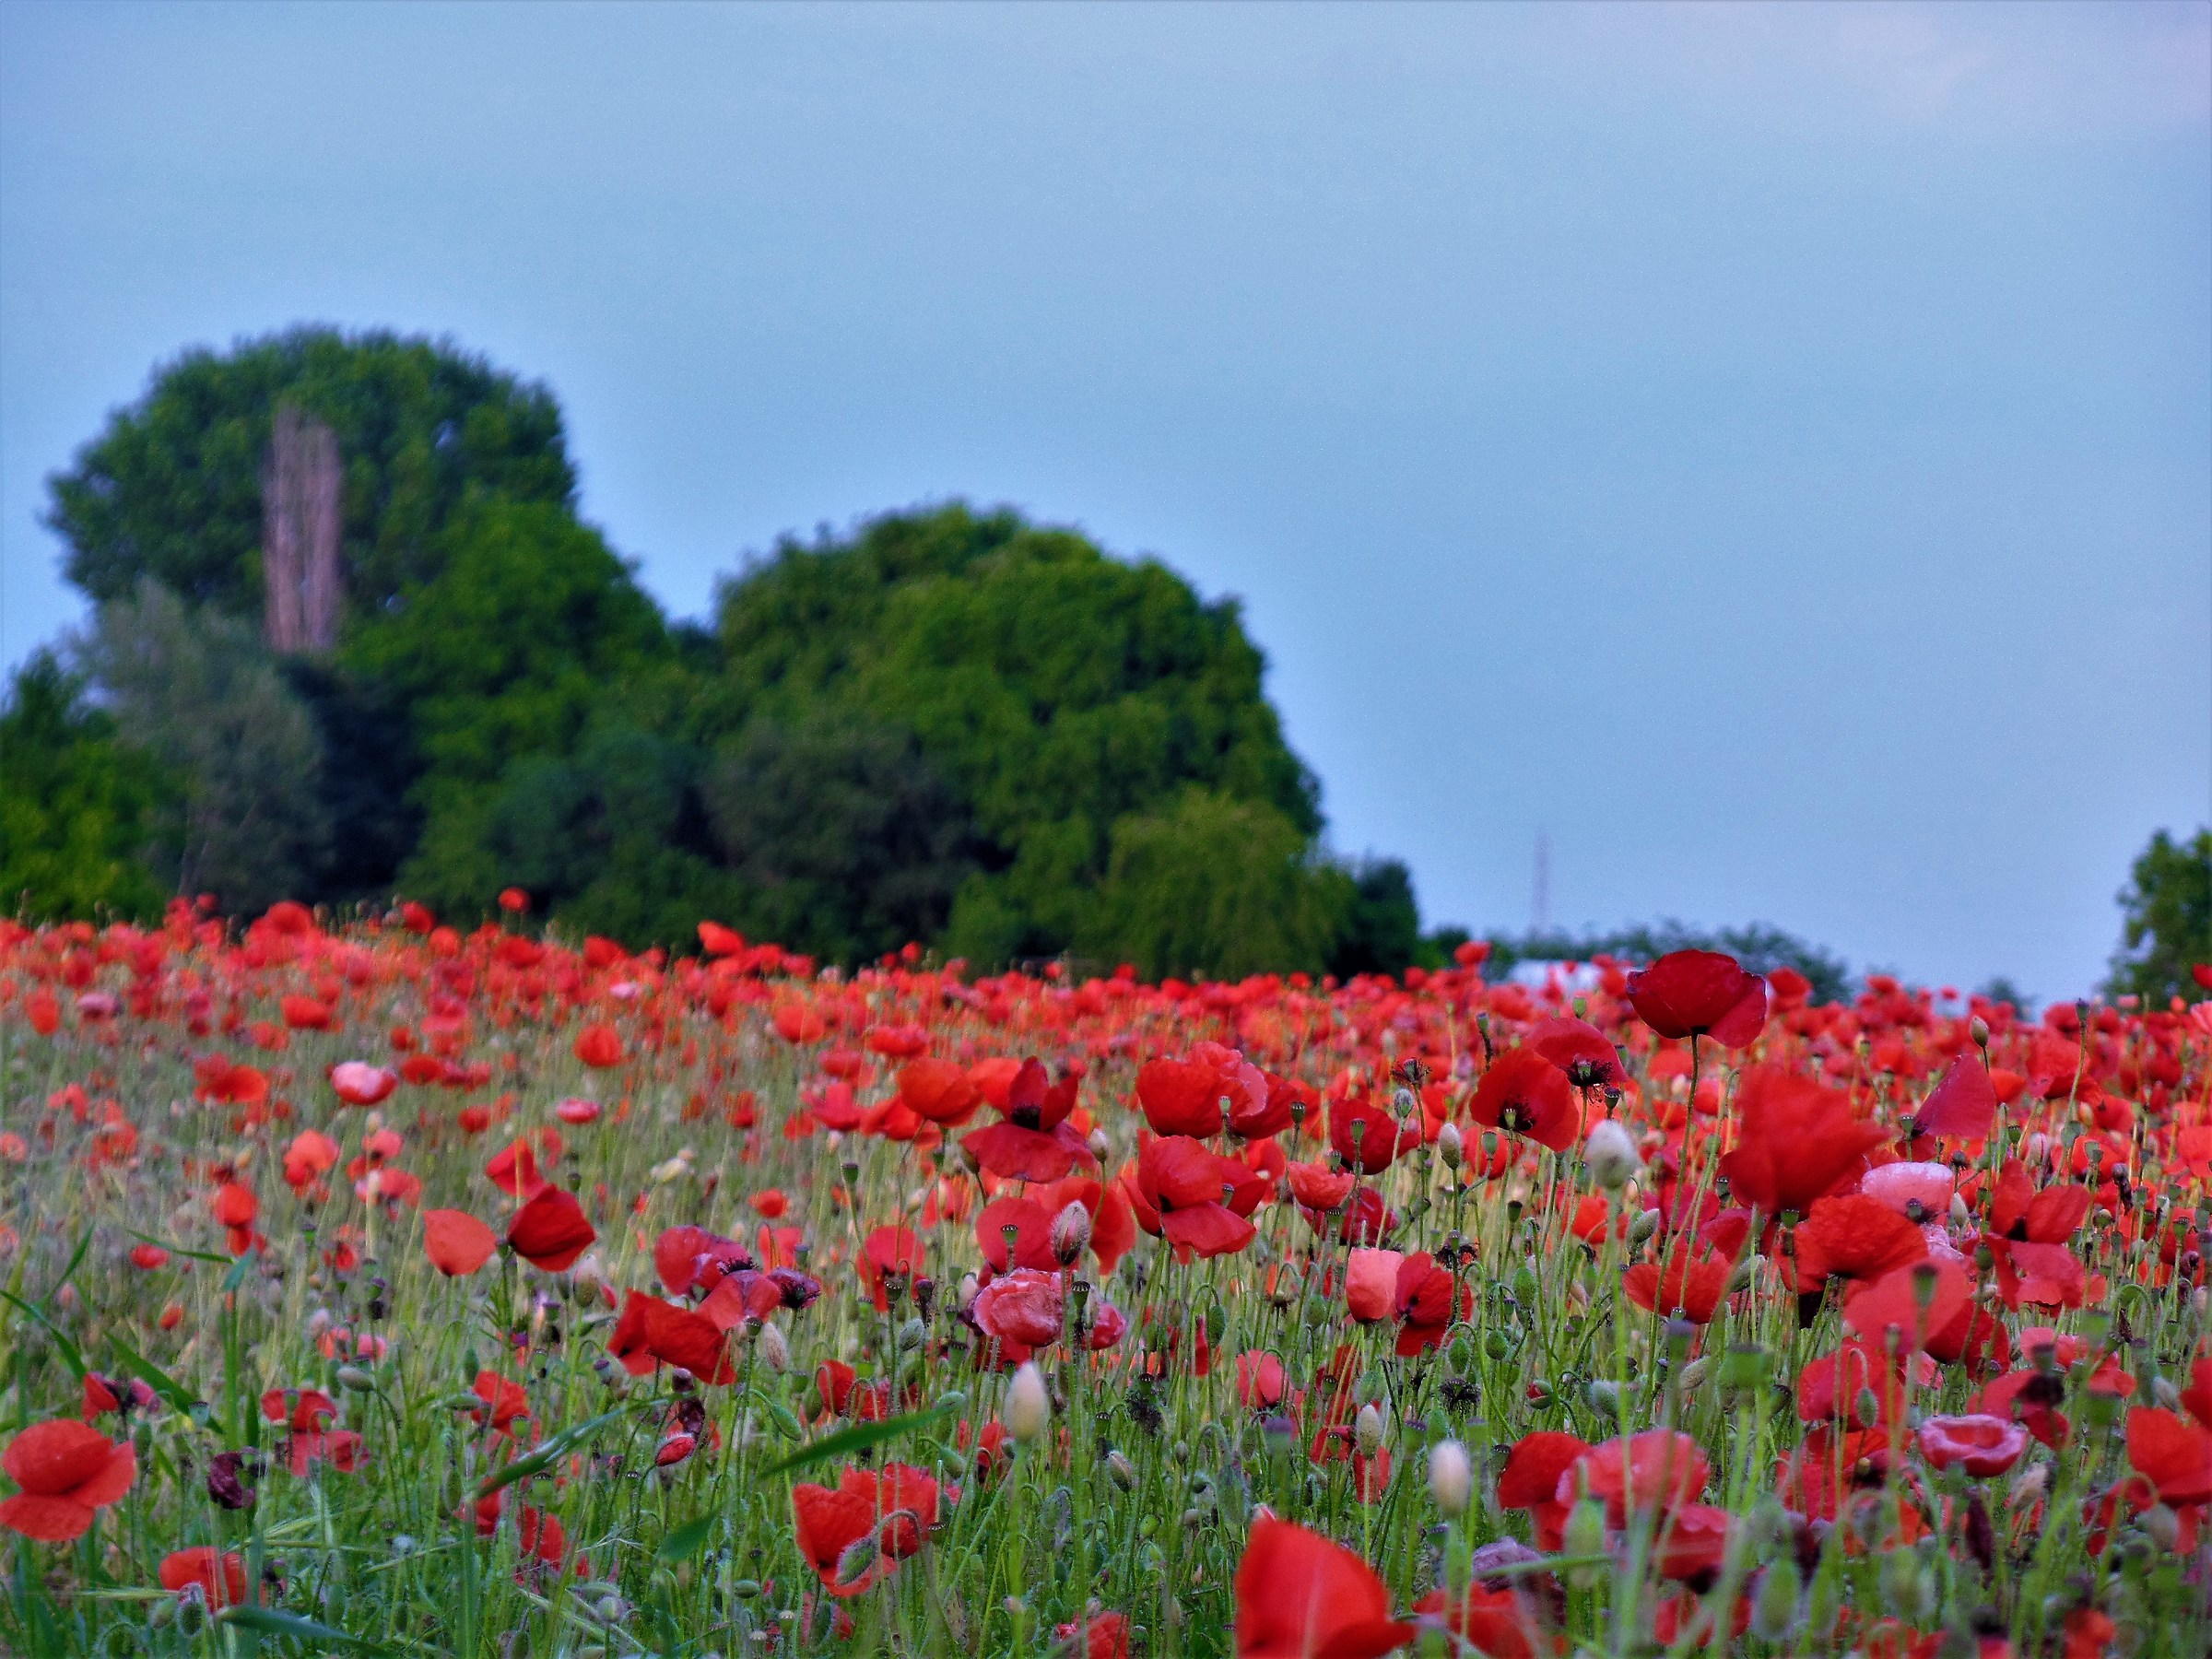 Real poppies.......